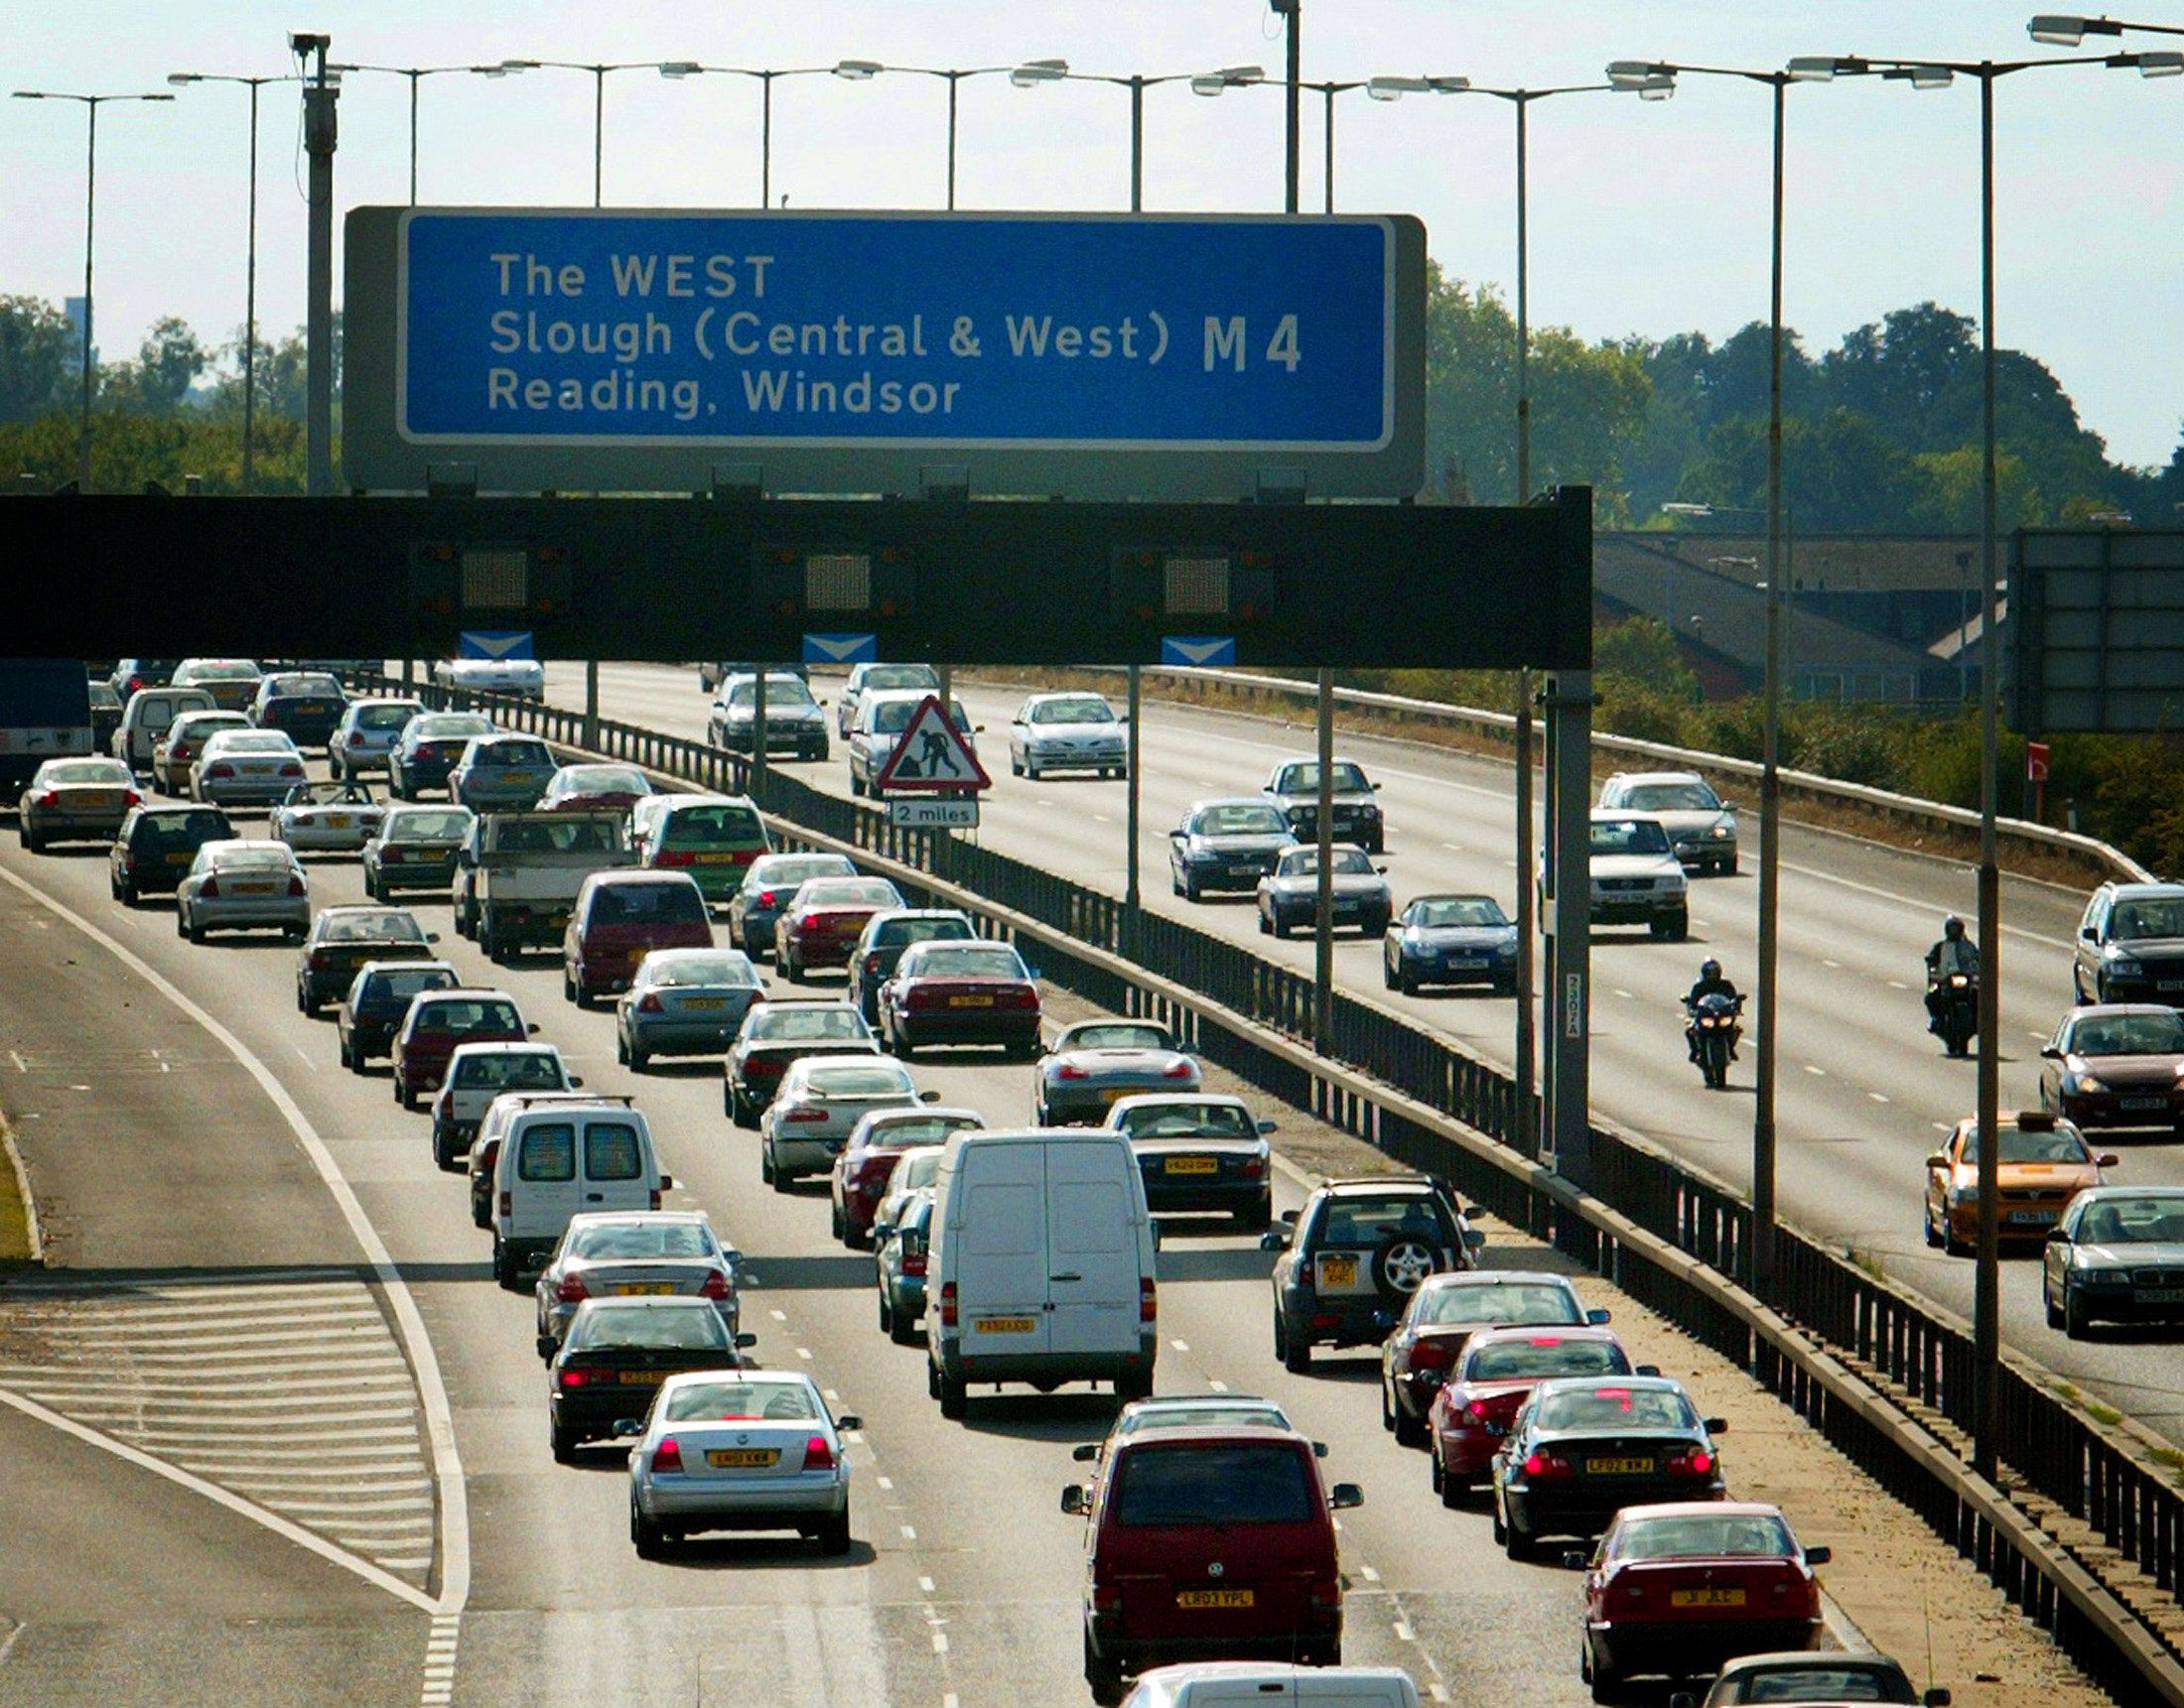 Queues of traffic head west on the M4 motorway just outside London as people head out of the capital...